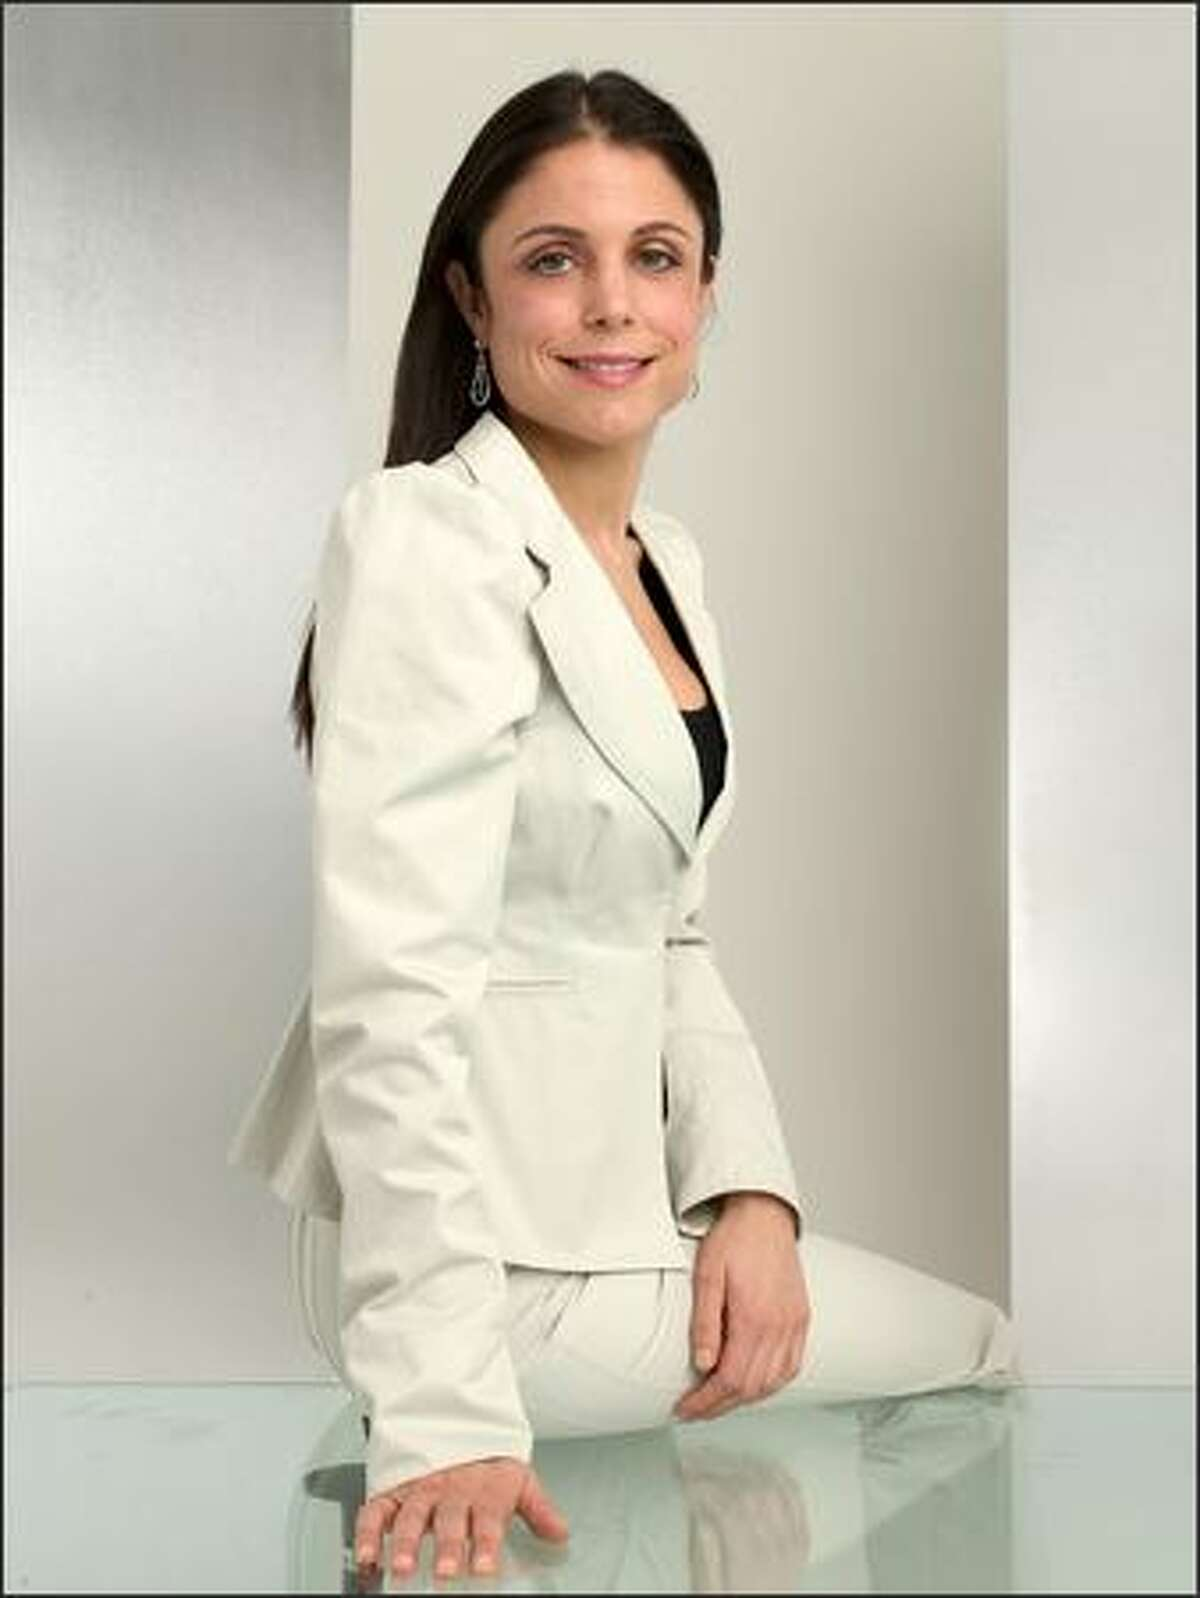 Bethenny Frankel, 34, natural foods chef, New York Bethenny works for a custom food delivery service providing healthy meals to celebrities and high-profile individuals with unique needs. She is also a consulting chef for Boca Burger and attended culinary school, where she studied food and healing. The NYU graduate owns bethennybakes.com, which makes lowfat, wheat-, dairy- and egg-free cookies. Prior to becoming a chef, Bethenny produced large-scale entertainment events for Merv Griffin Productions in Los Angeles and founded In Any Event, a company dedicated to producing high-profile celebrity events. She also started Princess Pashmina, a pashmina shawl importer, selling to celebrity clients and stores around the world. Bethenny, whose active lifestyle includes yoga, snowboarding and rollerblading, lives in New York City with her dog, Cookie.